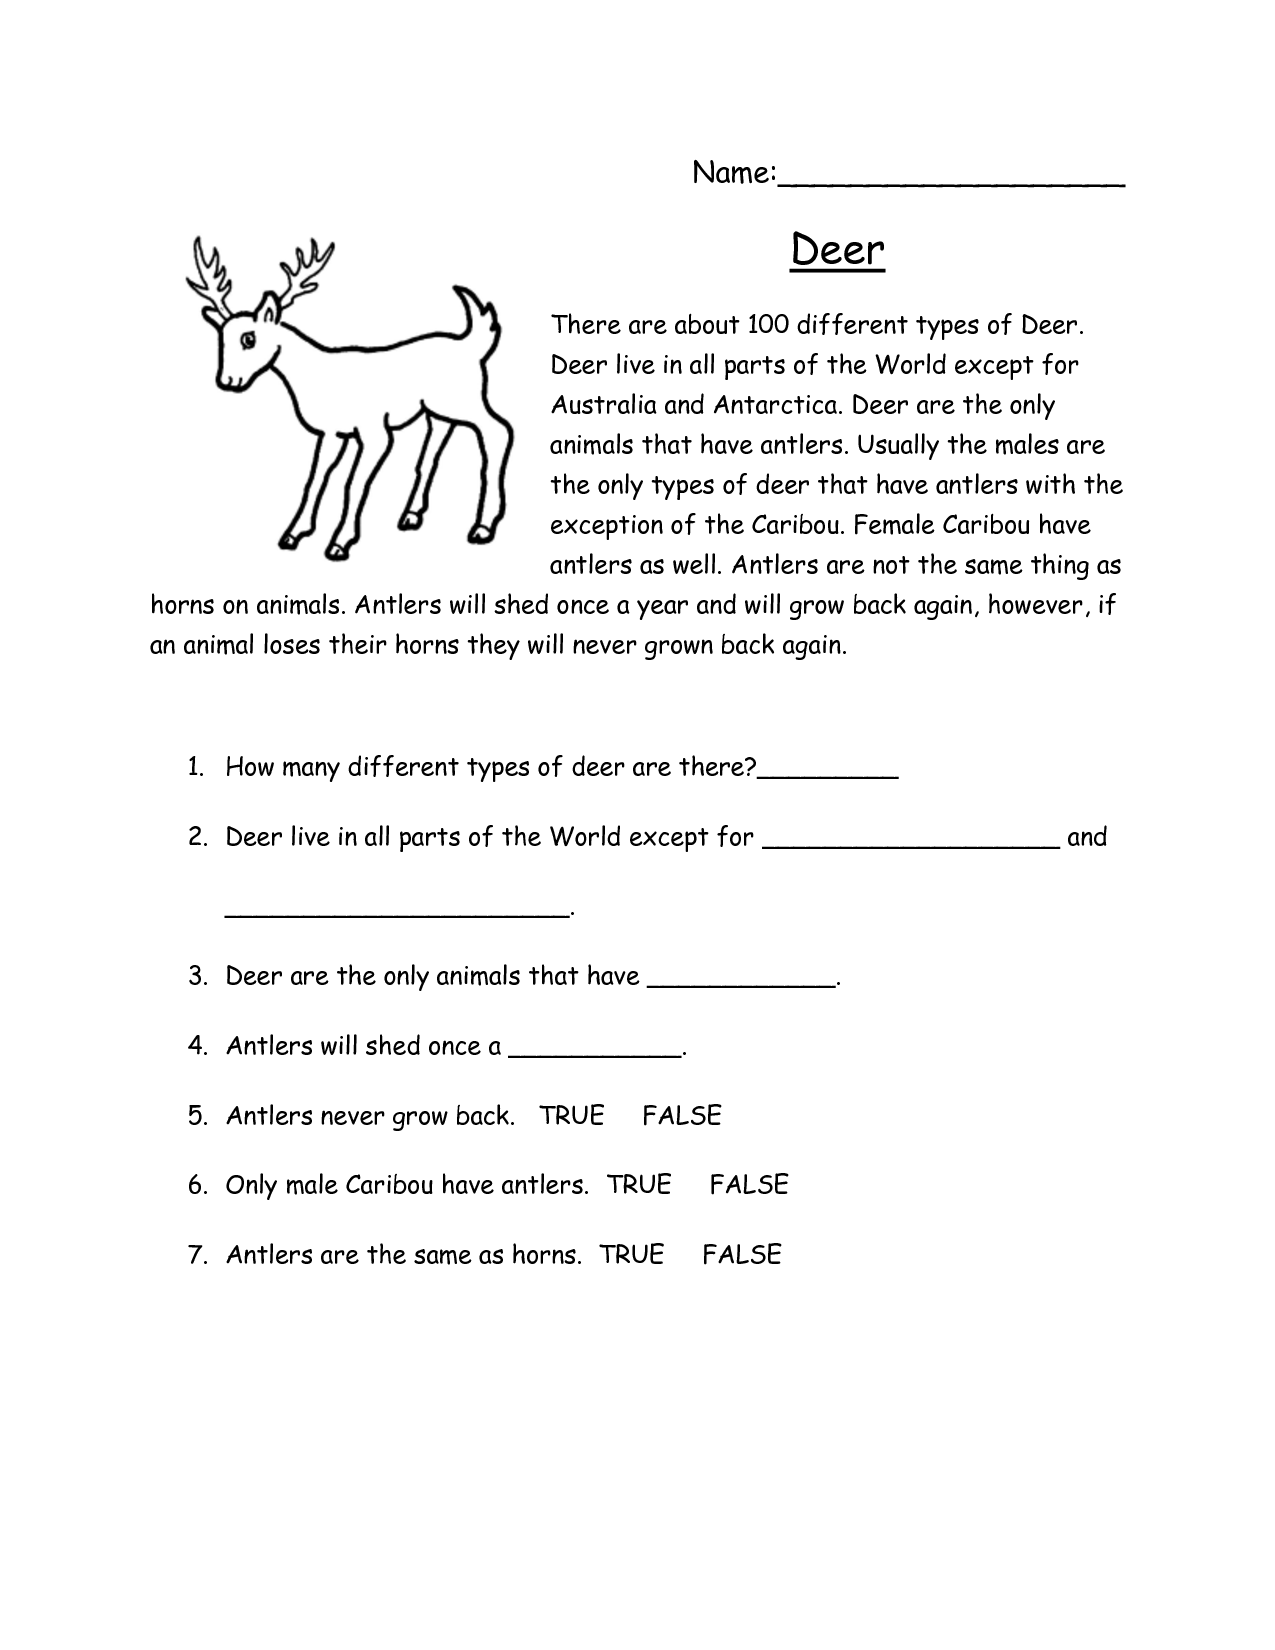 worksheet Reading Comprehension Worksheets For High School 10 best images about idee per la casa on pinterest present tense esl and daily routines